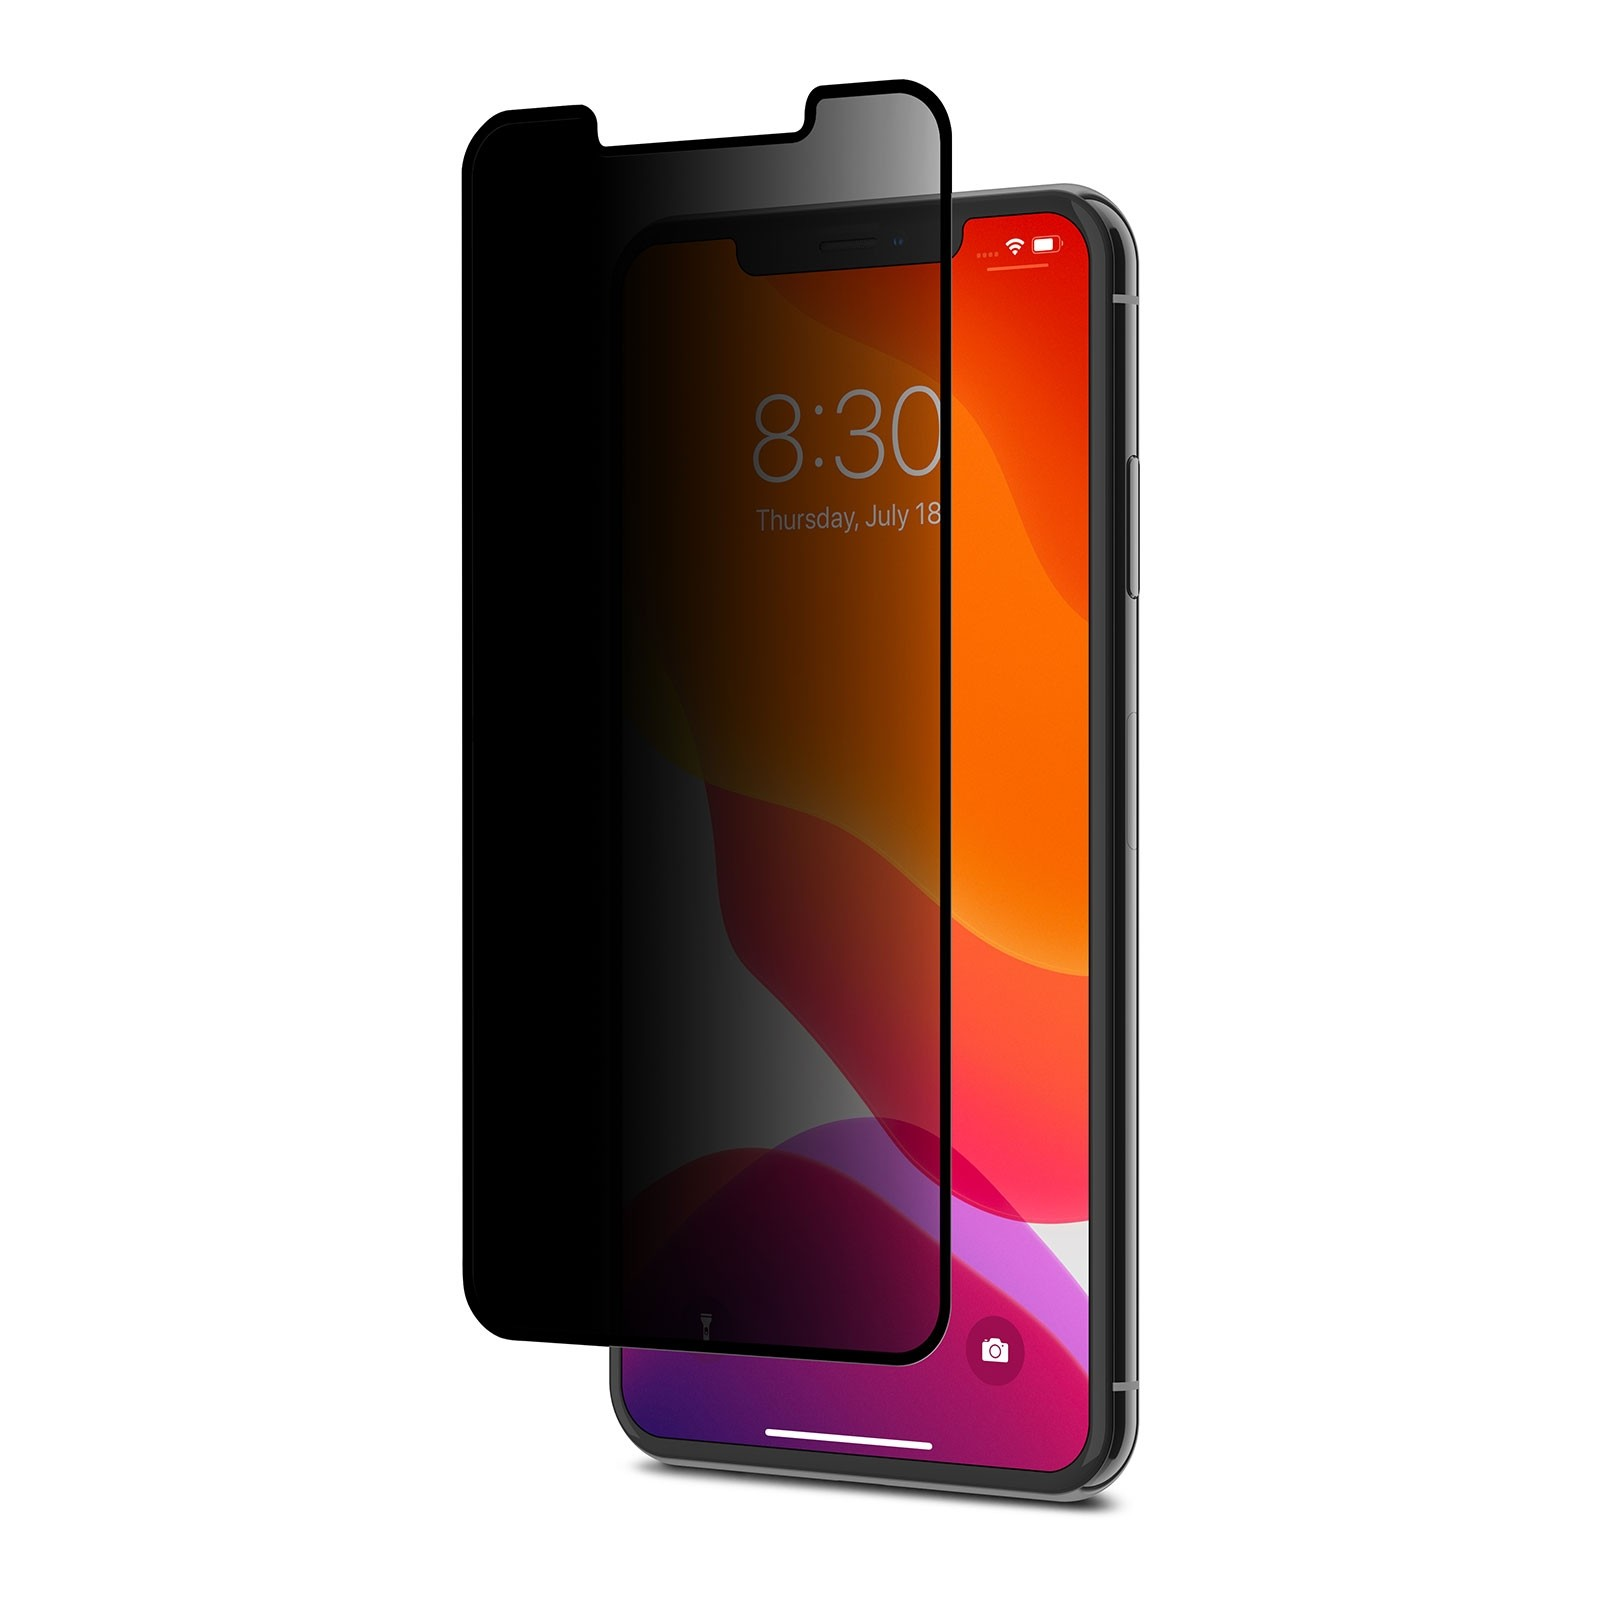 Moshi IonGlass Privacy for iPhone 11 Pro Max/Xs Max - Black, 99MO115002